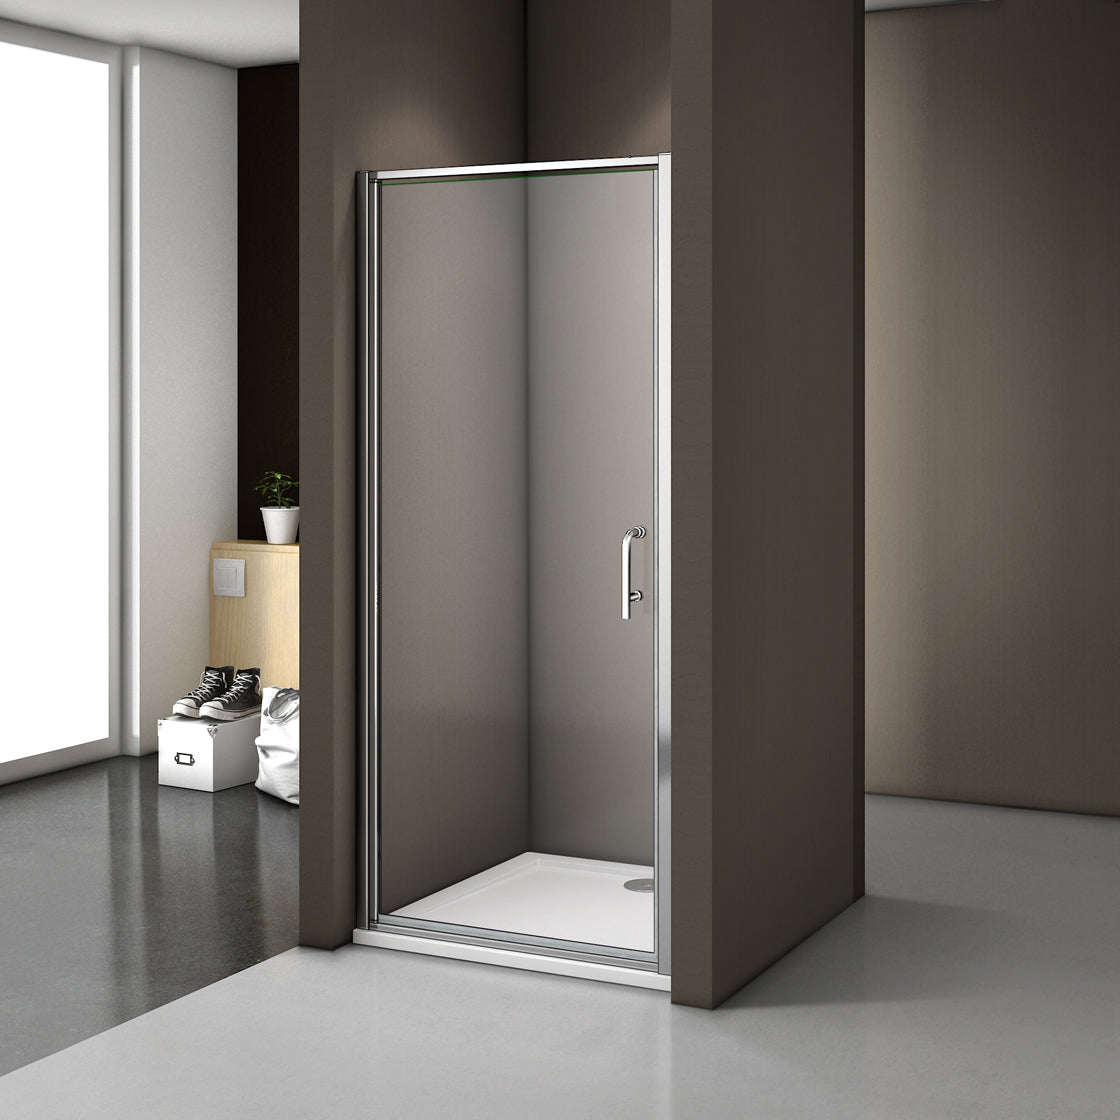 900mm|1000mm 1850 height Pivot Shower Door,Shower Stone Tray Optional